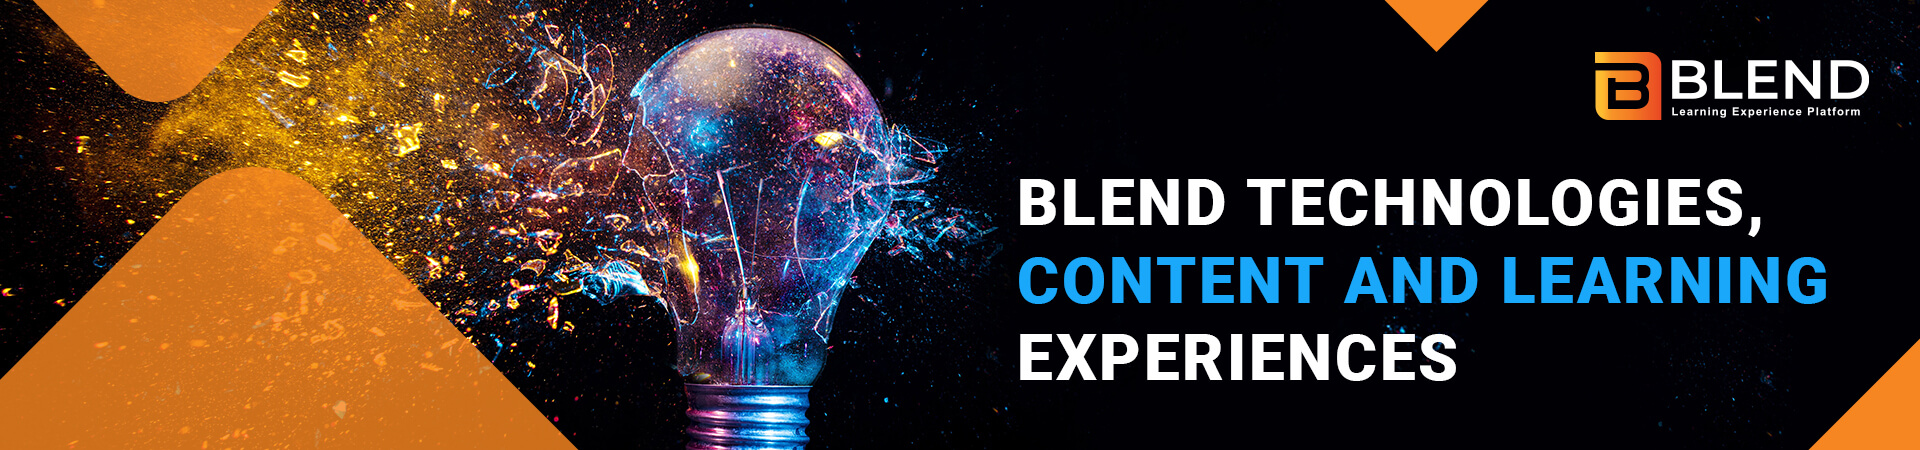 Blend Technologies, Content and Learning Experiences